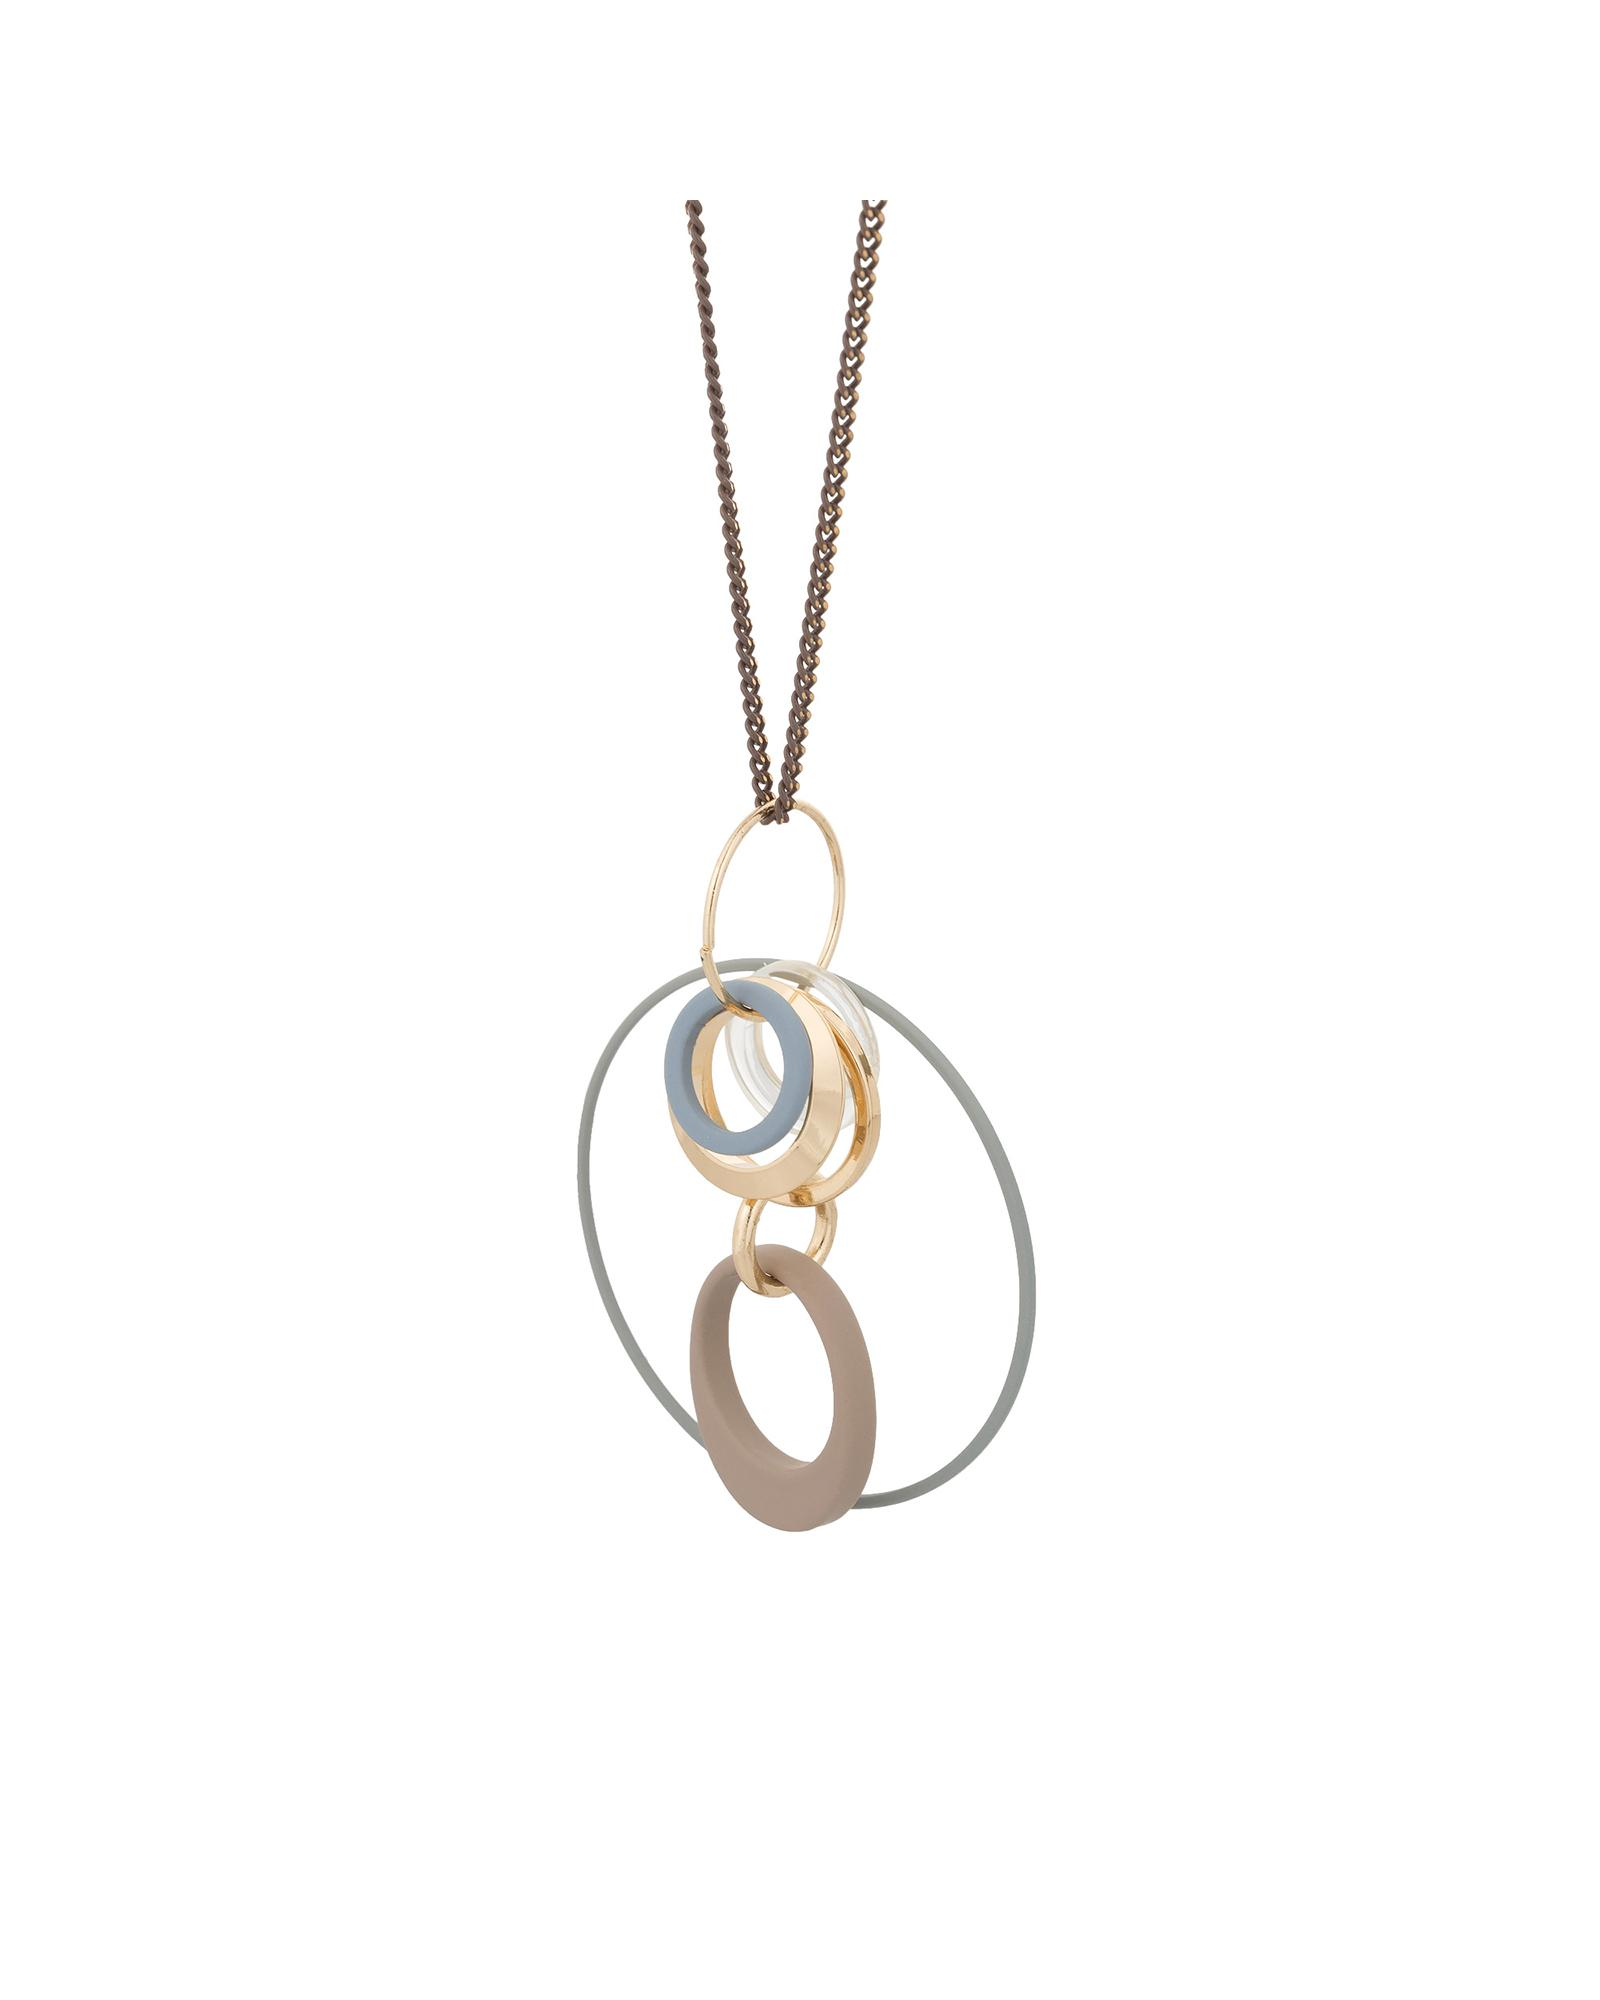 Oliver Bonas Rubber Maligne Interlink Circles Pendant Necklace in Gold (Metallic)